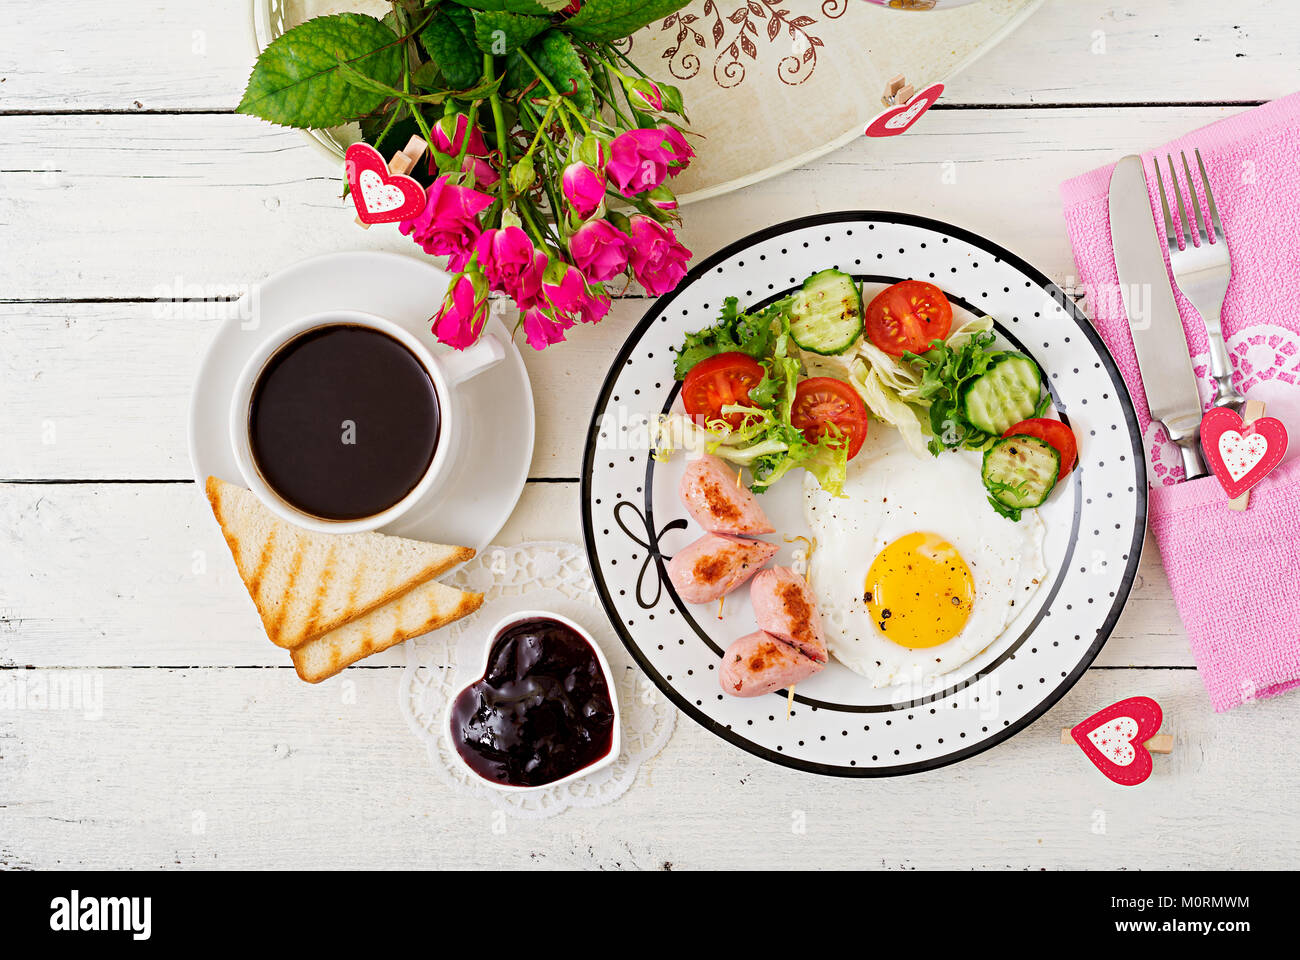 Breakfast on Valentine's Day - fried egg in the shape of a heart, toasts, sausage and fresh vegetables. Cup - Stock Image